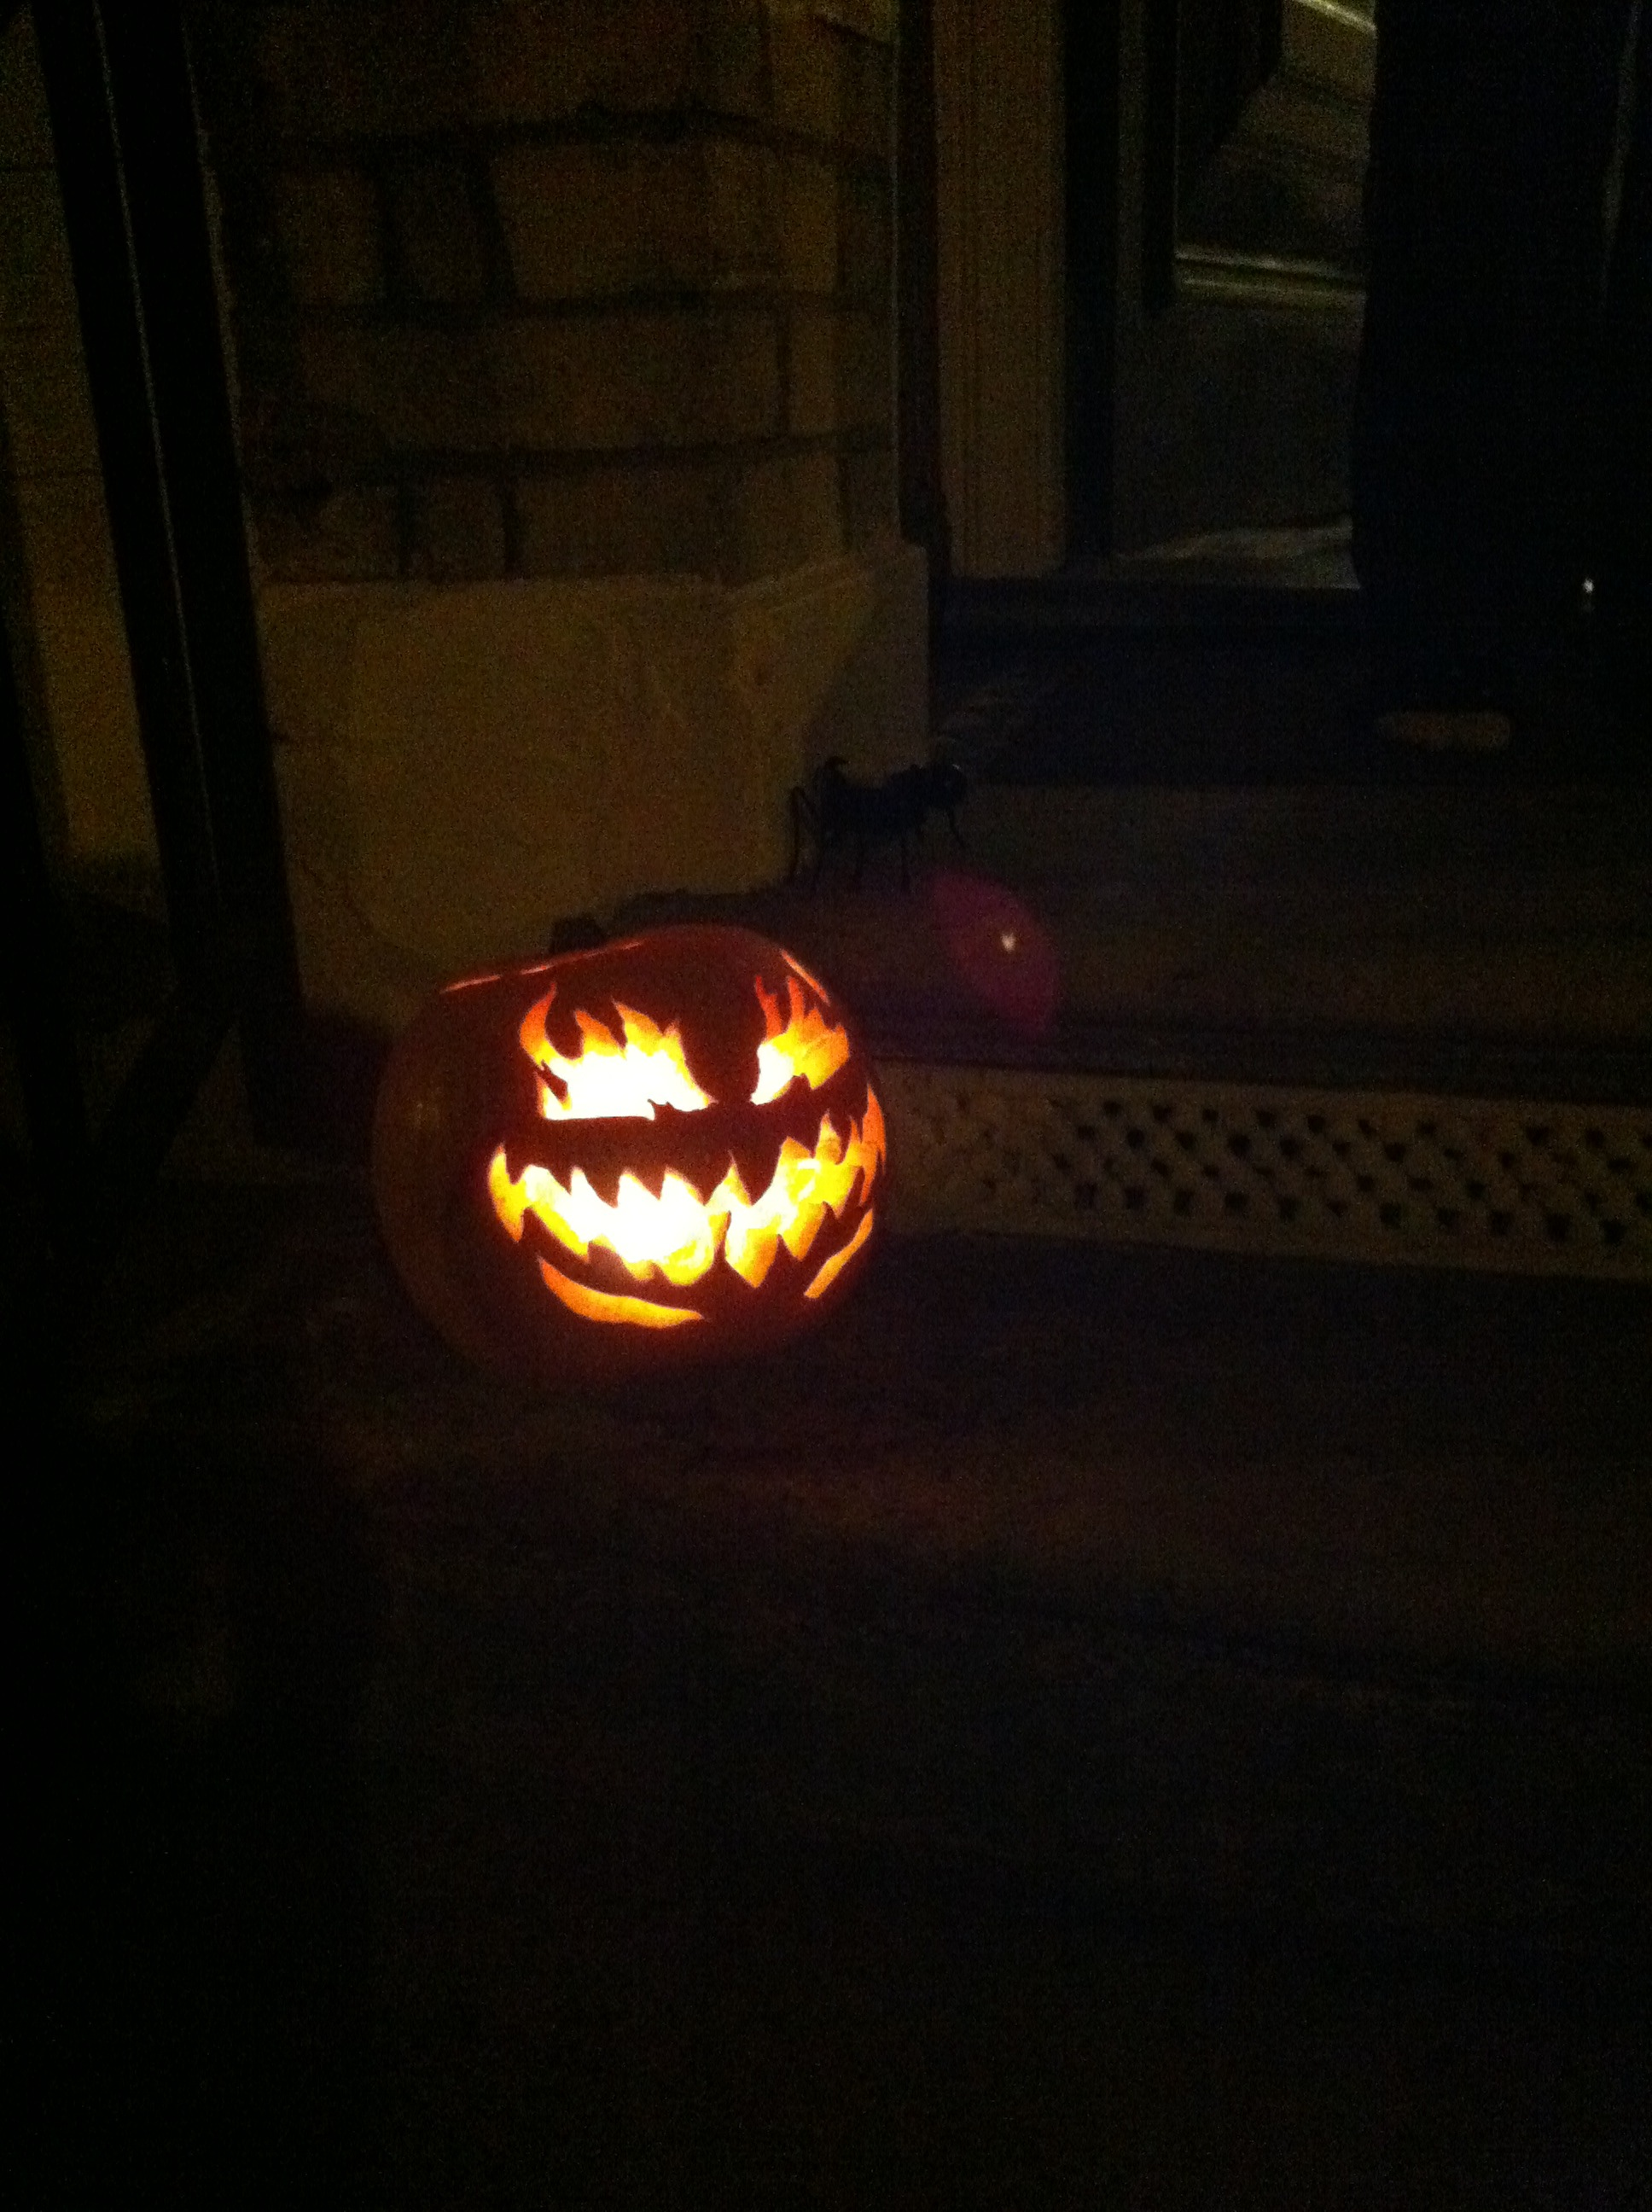 Pumpkin carved for Halloween